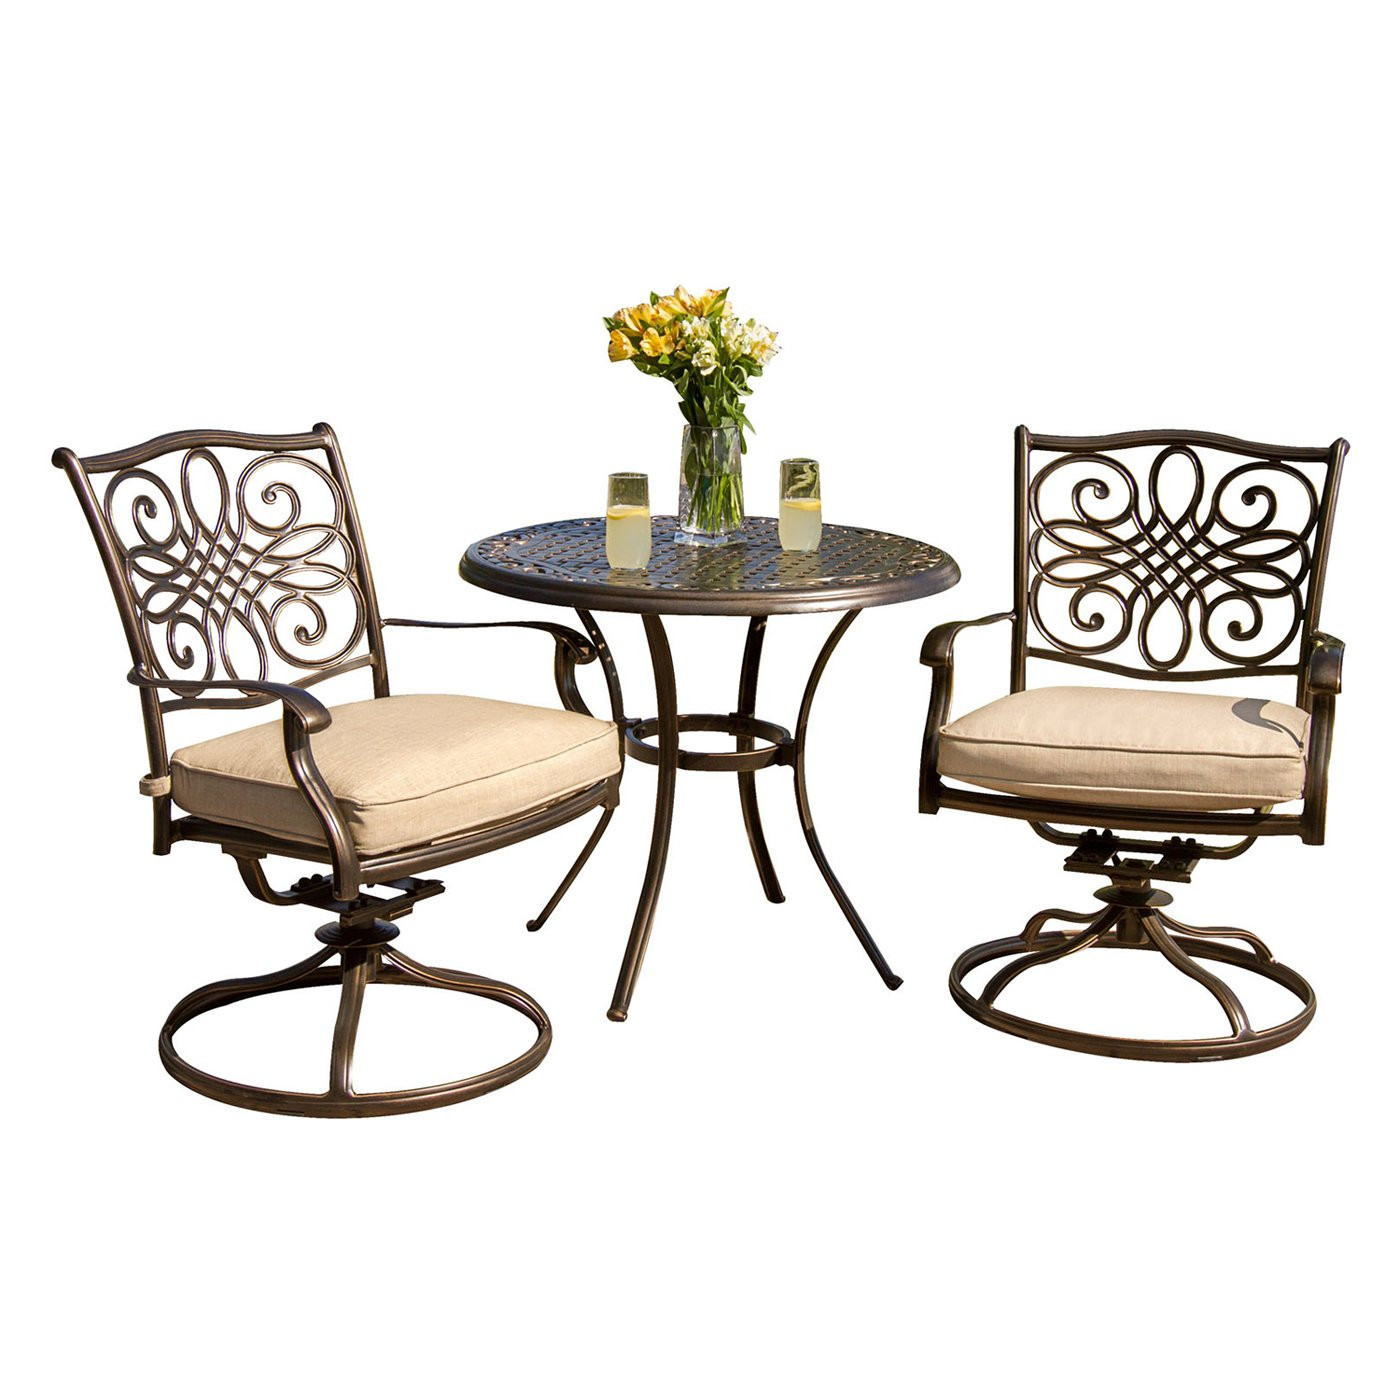 Best ideas about 3 Piece Patio Set . Save or Pin Hanover Outdoor Furniture TRADITIONS3PCSW Traditions 3 Now.